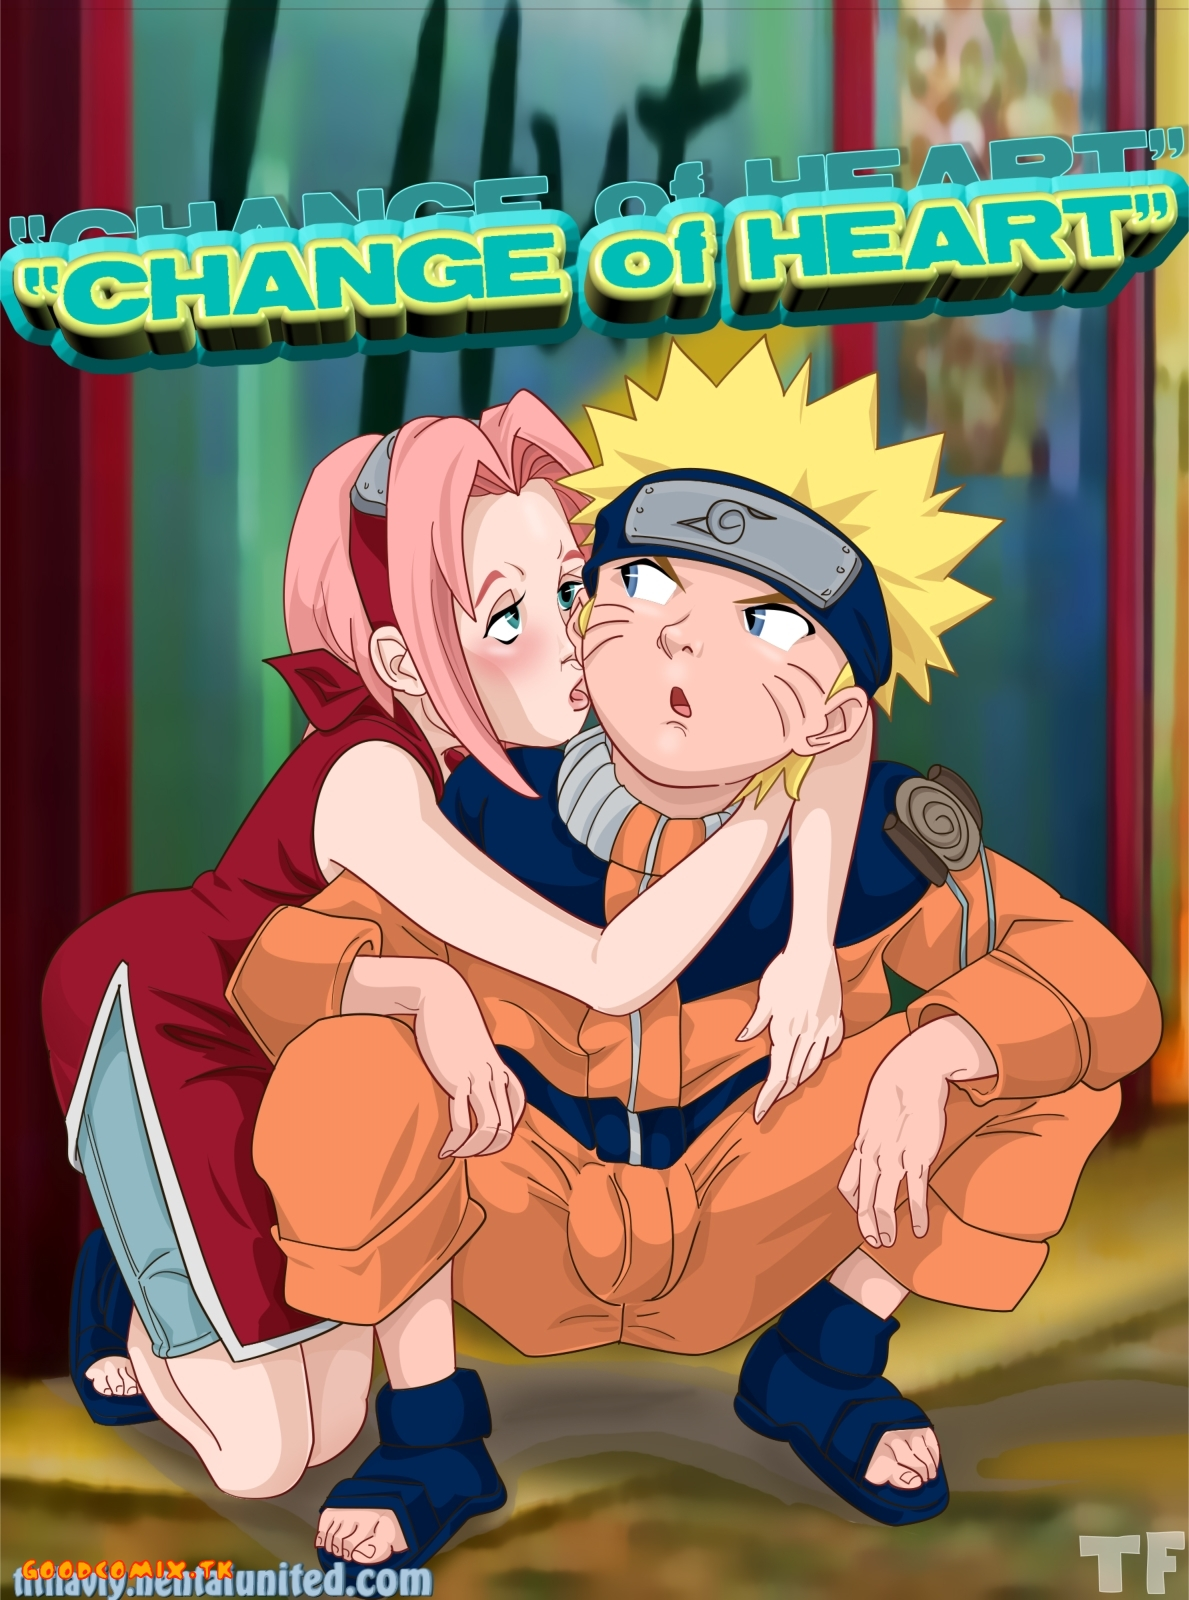 Goodcomix Naruto - [TitFlaviy] - Change Of Heart xxx porno